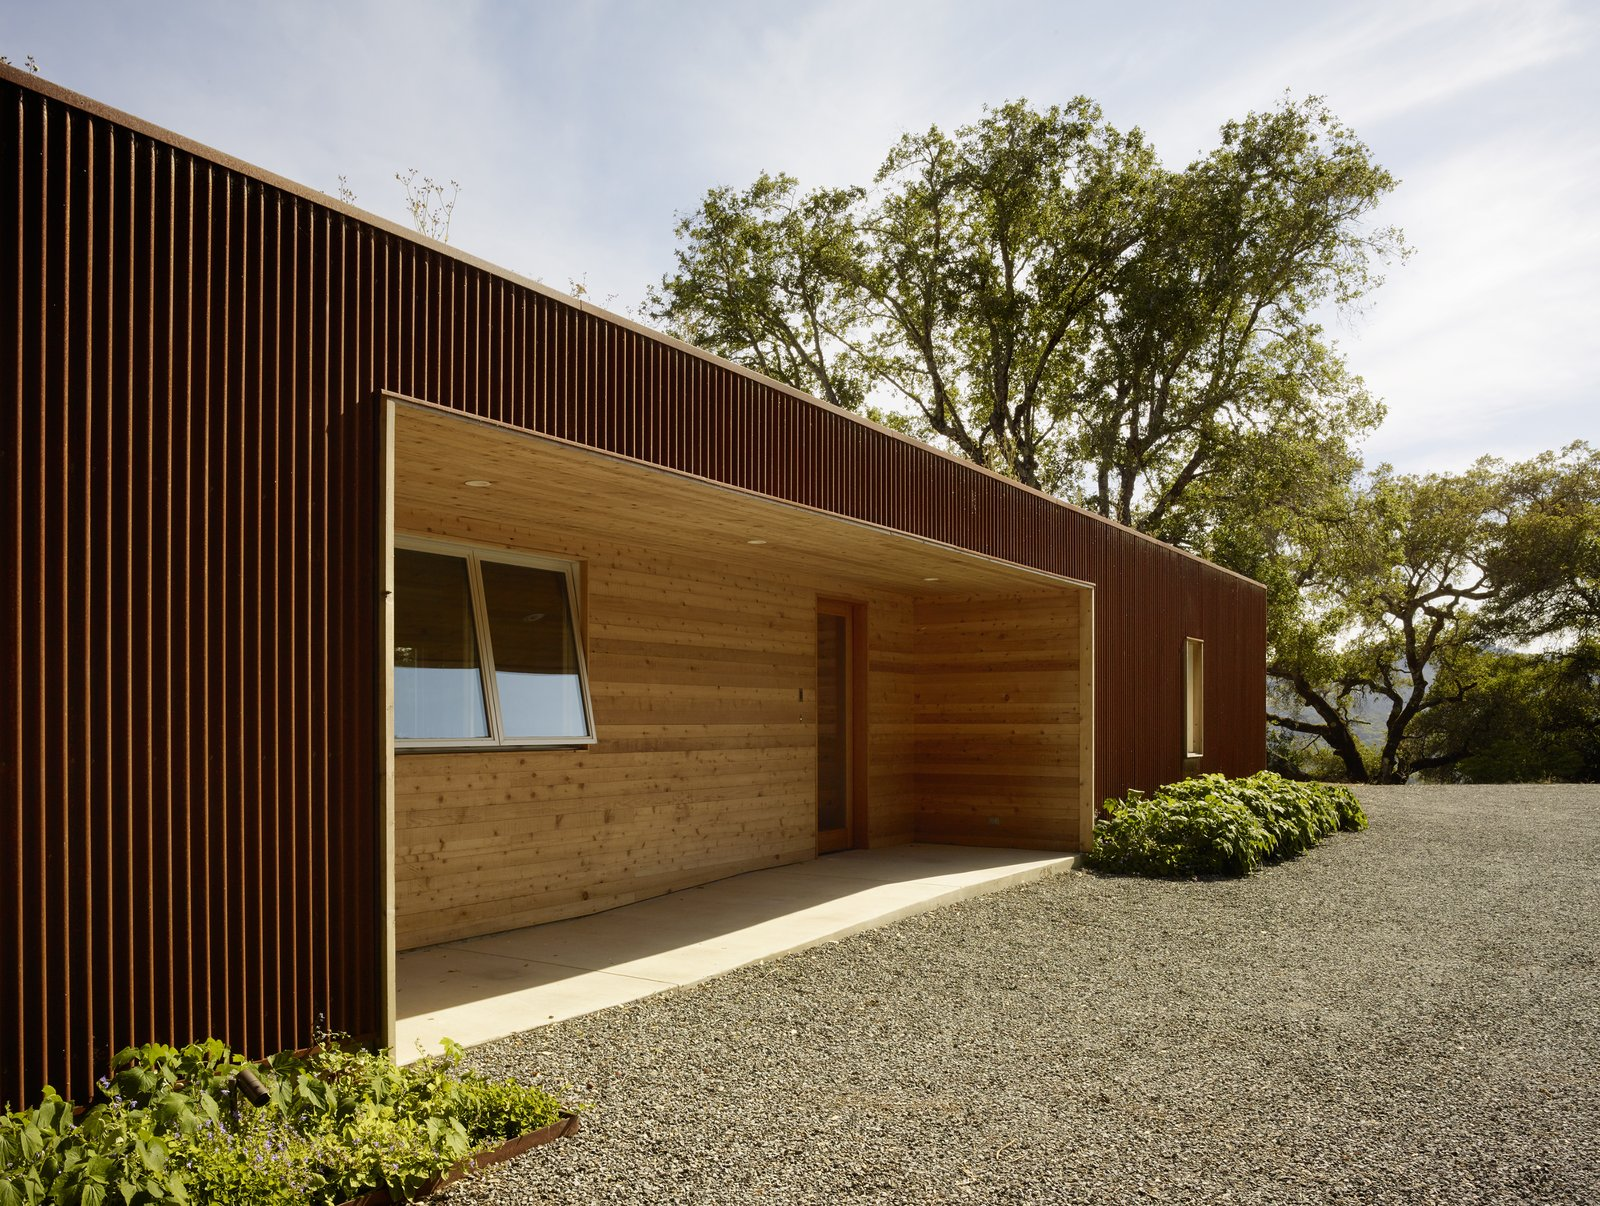 #TurnbullGriffinHaesloop #outdoor #exterior #corten #entry  Cloverdale Residence by Turnbull Griffin Haesloop Architects